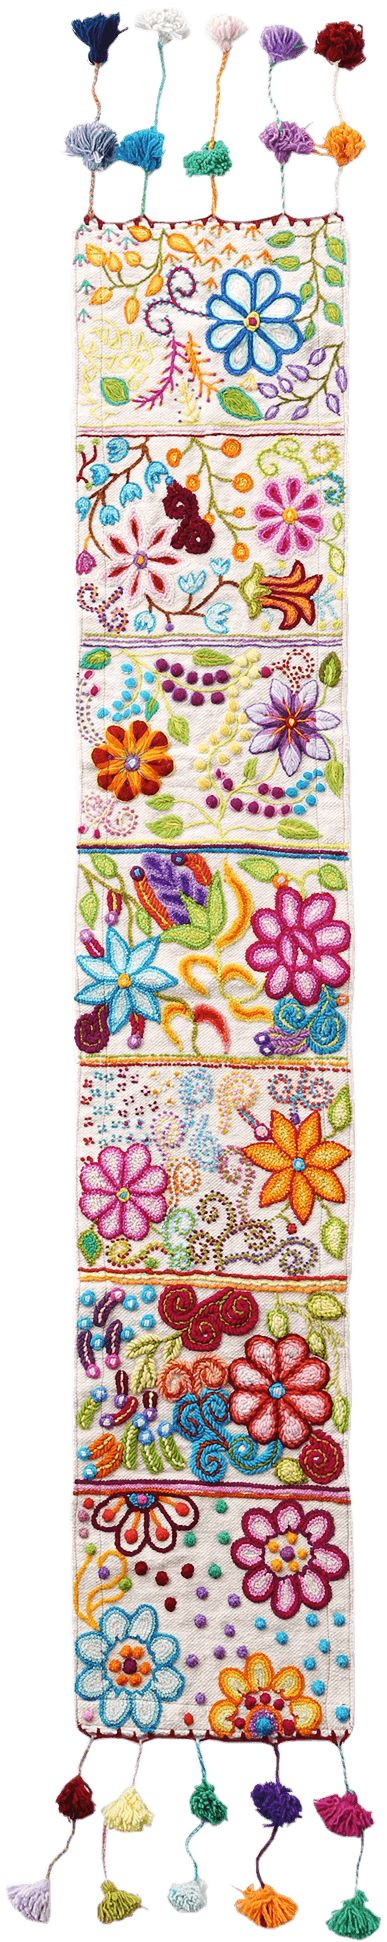 Tassel Stitch Table Runner / This nice Jenny Krauss design from Anthropologie is tassel-stitched, colorful and hippie-fringed.